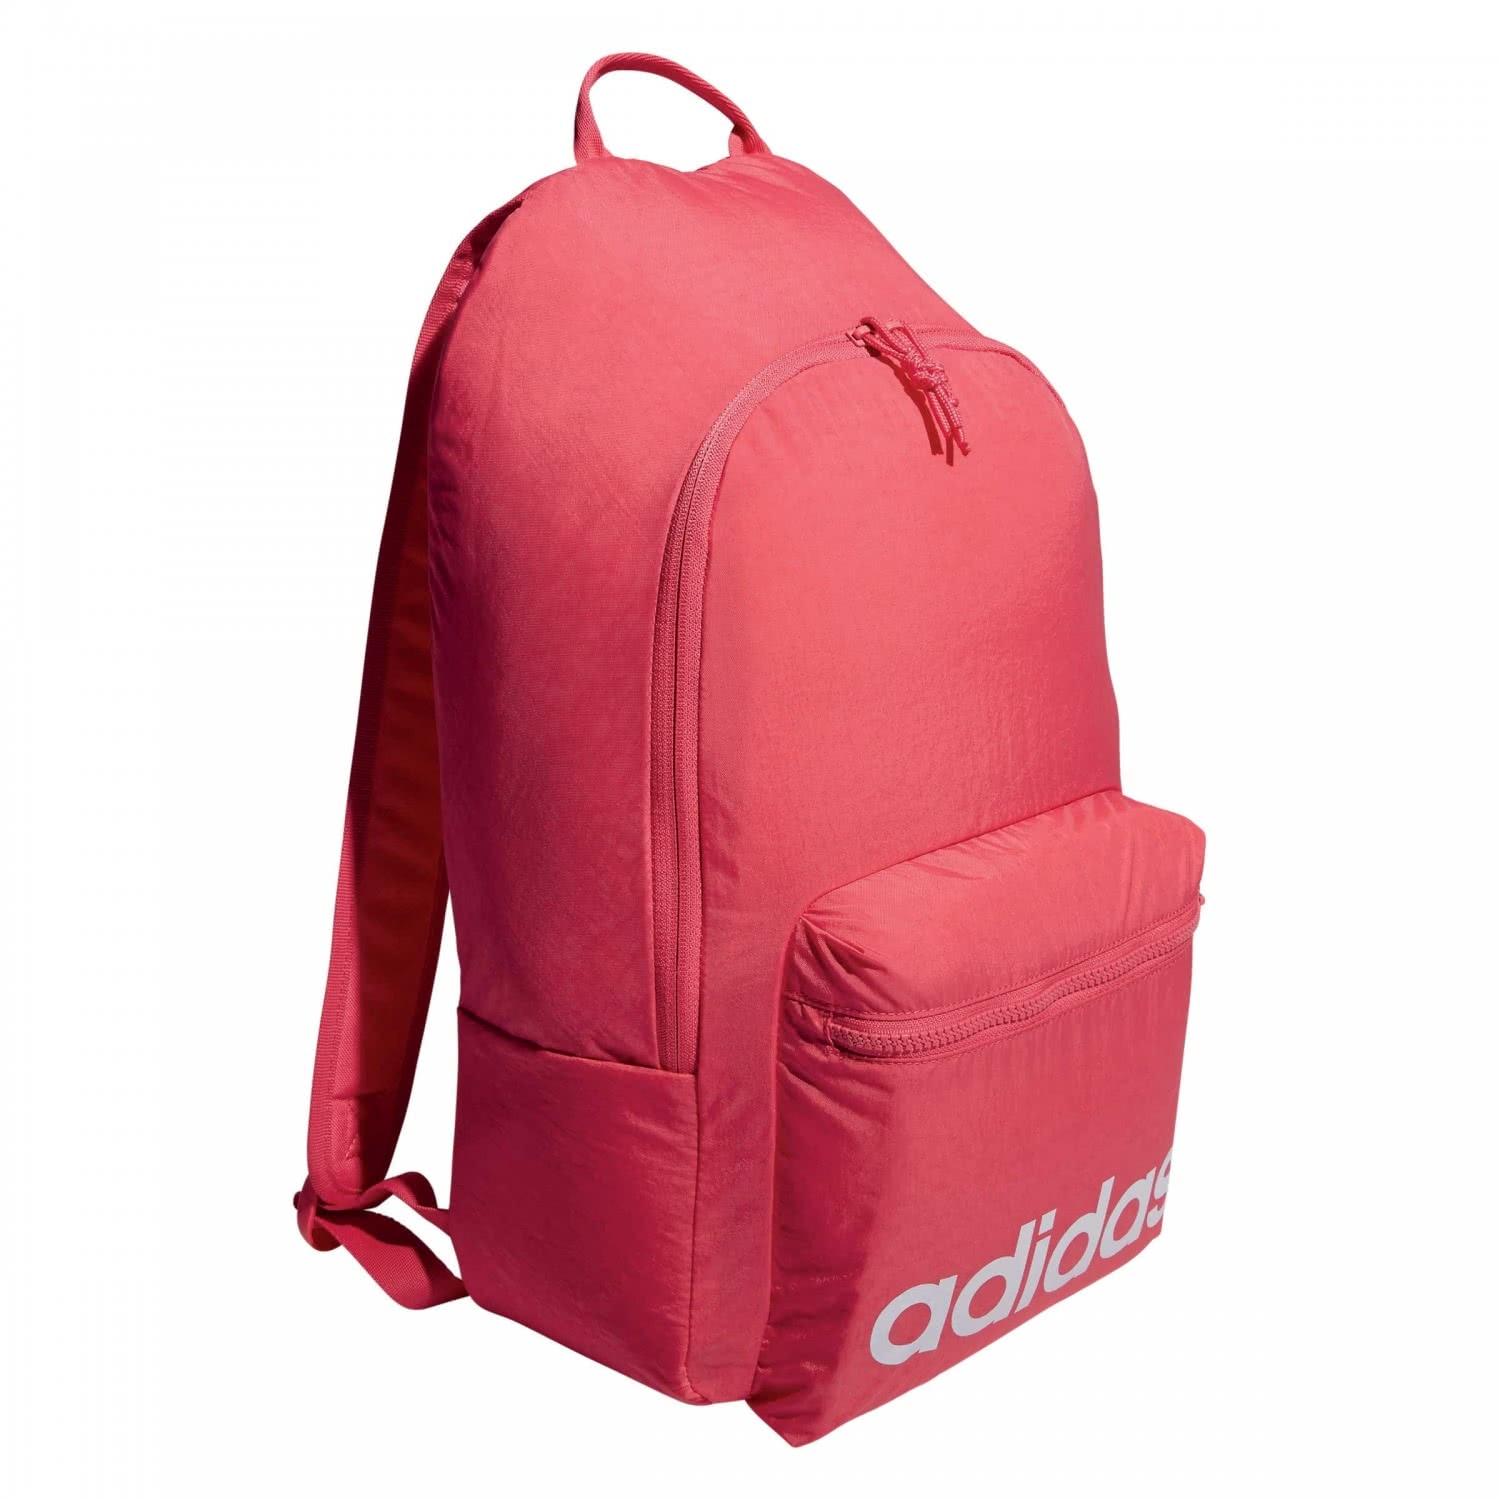 adidas CORE Mädchen Rucksack BACKPACK DAILY